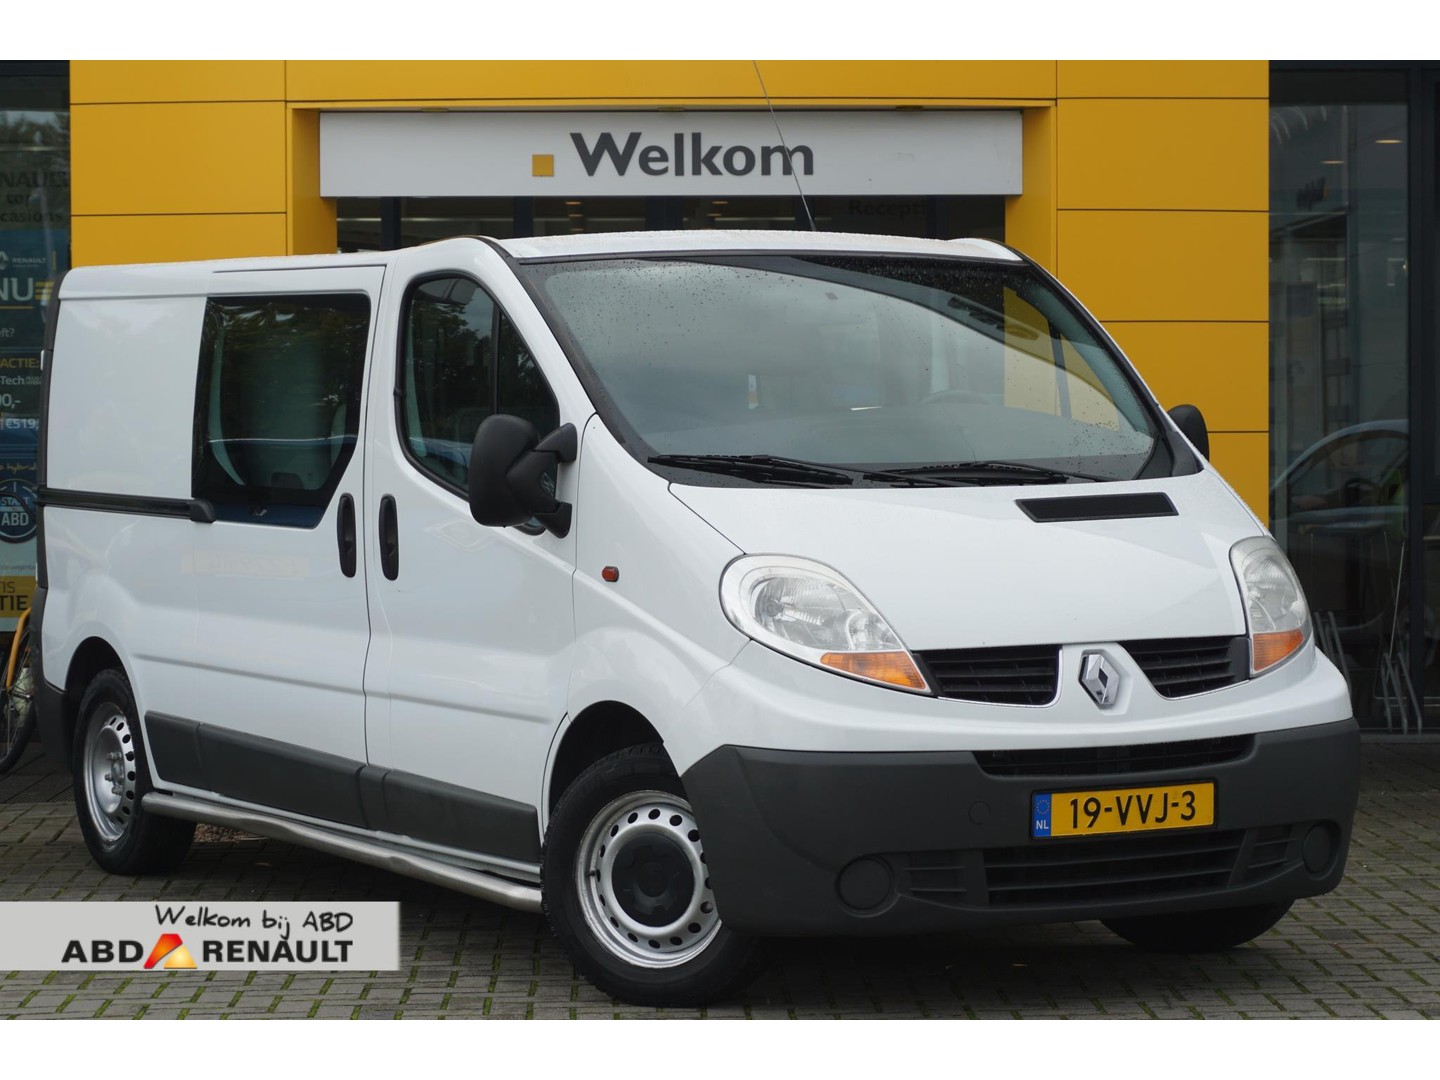 Renault Trafic 2.0 dci t29 l2h1 dc marge auto